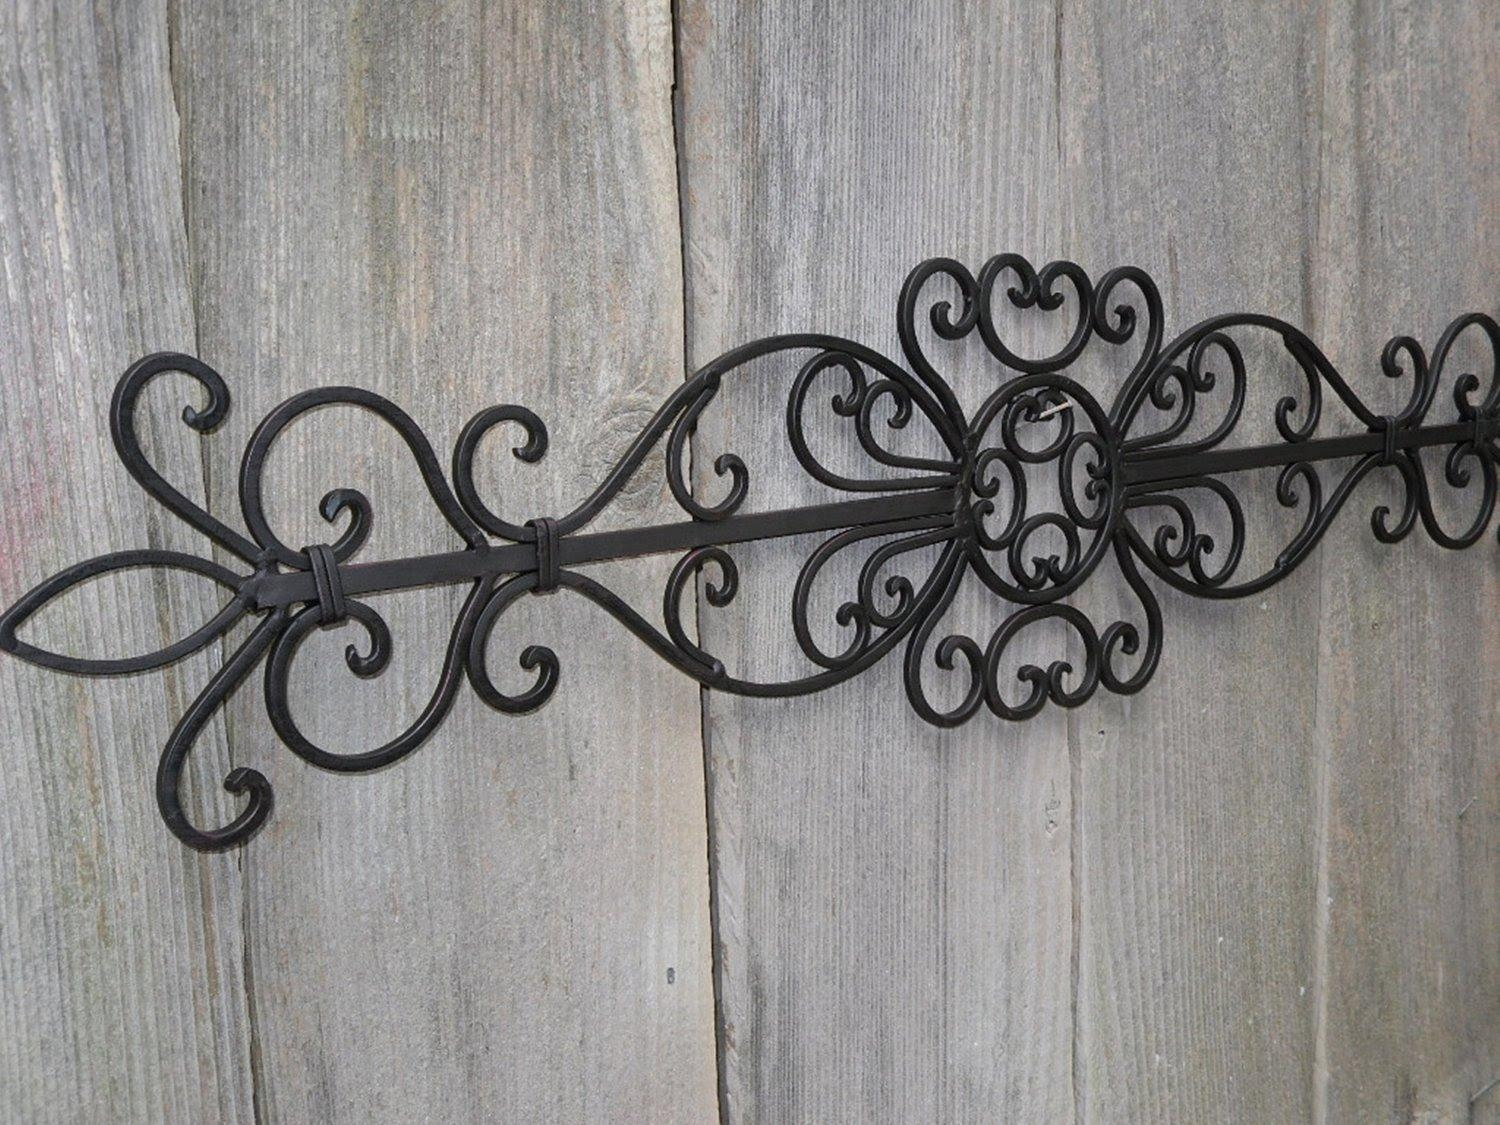 Garden Wall Decor Wrought Iron – Home Design And Decorating With Swirl Metal Wall Art (Image 4 of 20)